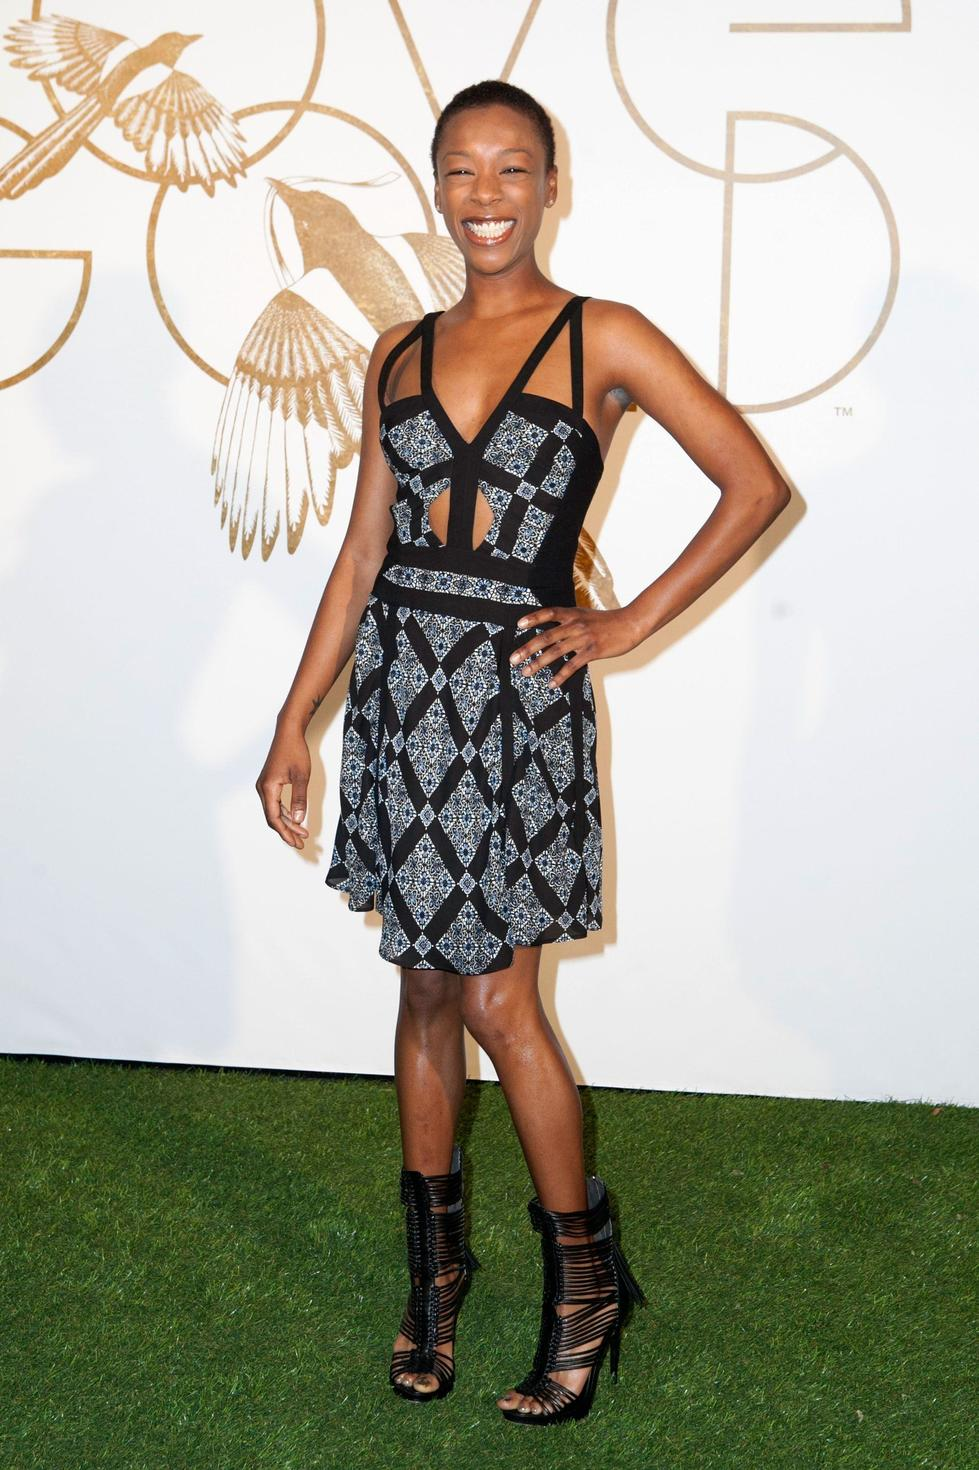 Samira Wiley is known for her role as Poussey Washington in 'Orange Is The New Black',  and has had a closely cropped look since she rose to fame